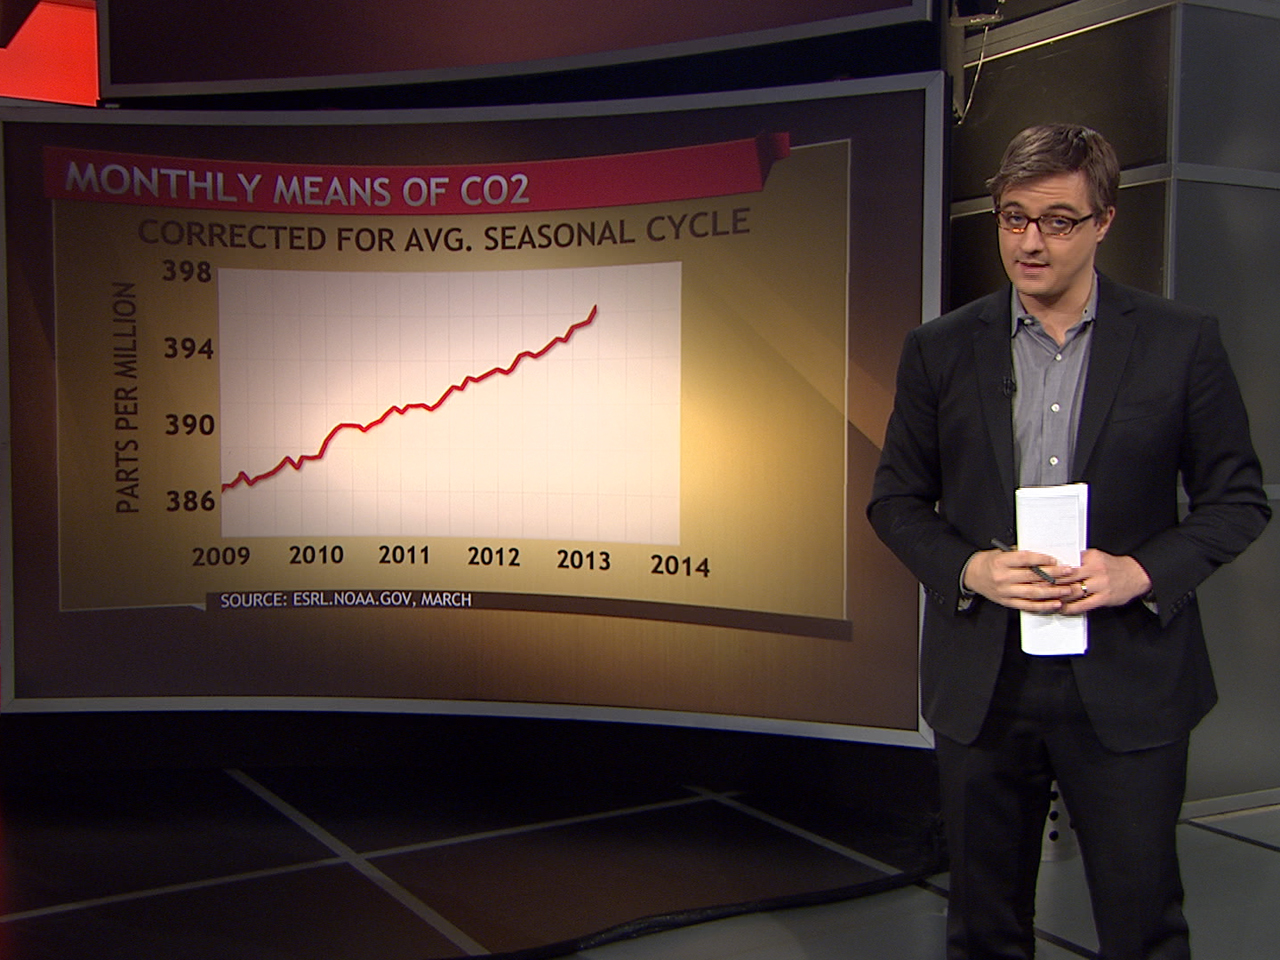 More carbon dioxide in air than ever before